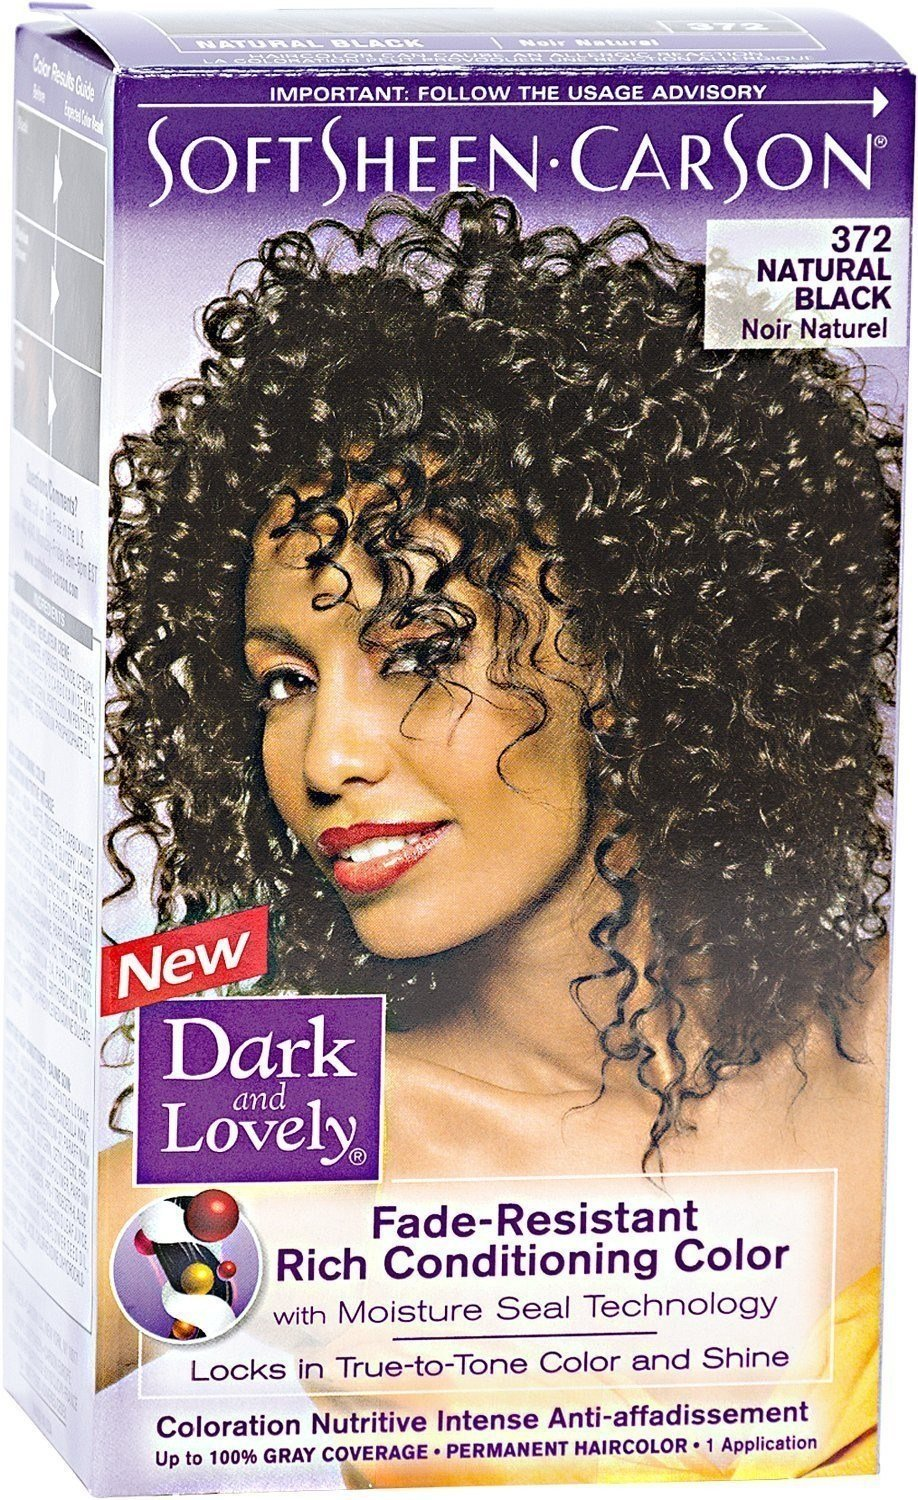 The Best Dark And Lovely Permanent Haircolor Natural Black 372 1 Pictures